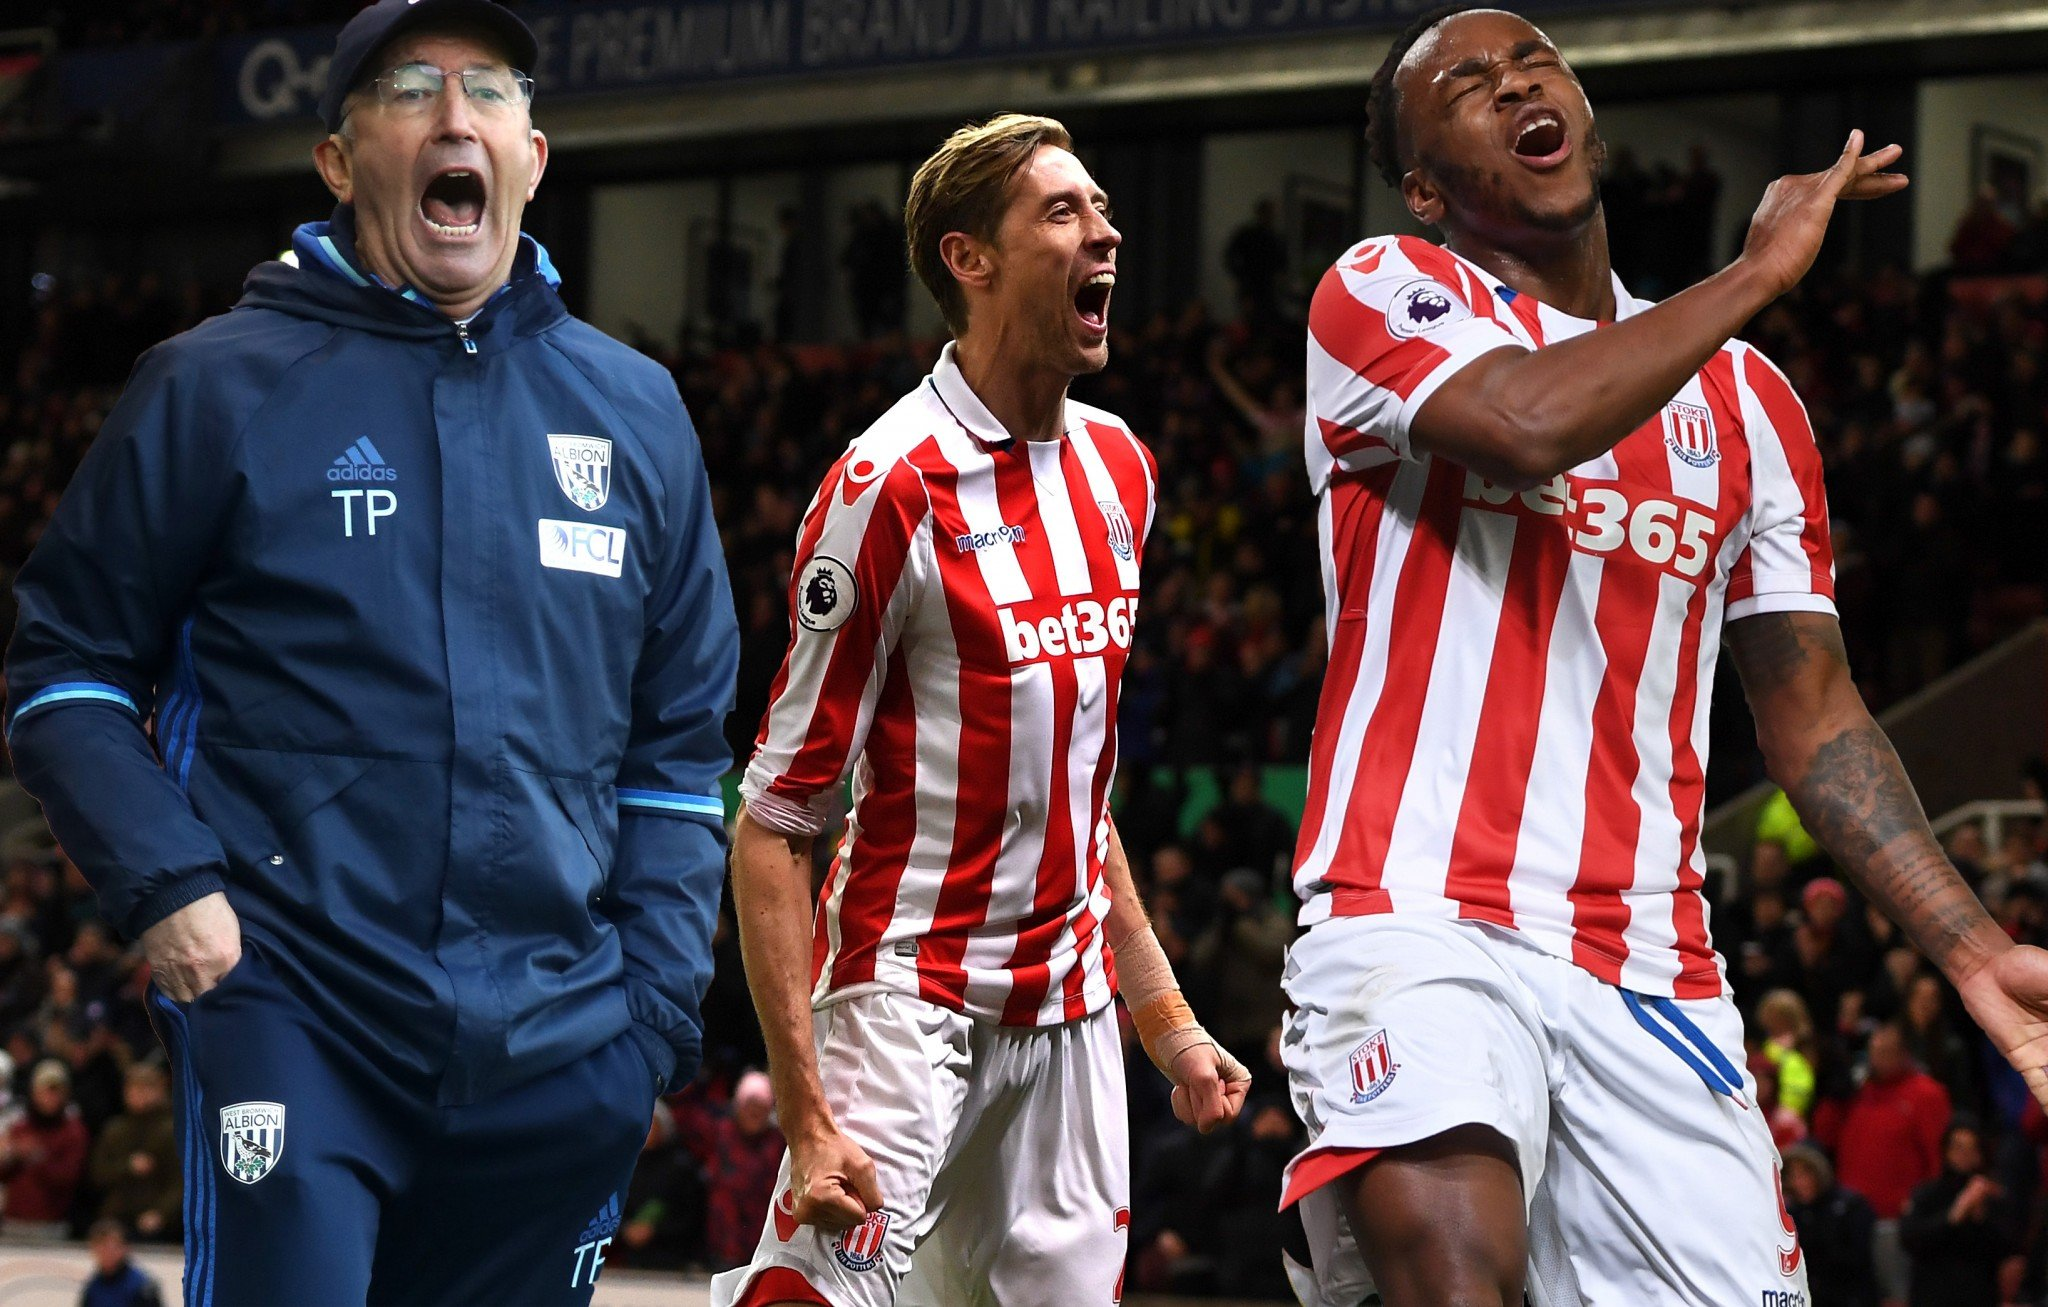 Tony Pulis fears Stoke's in-form Peter Crouch than his ex-striker Saido Berahino